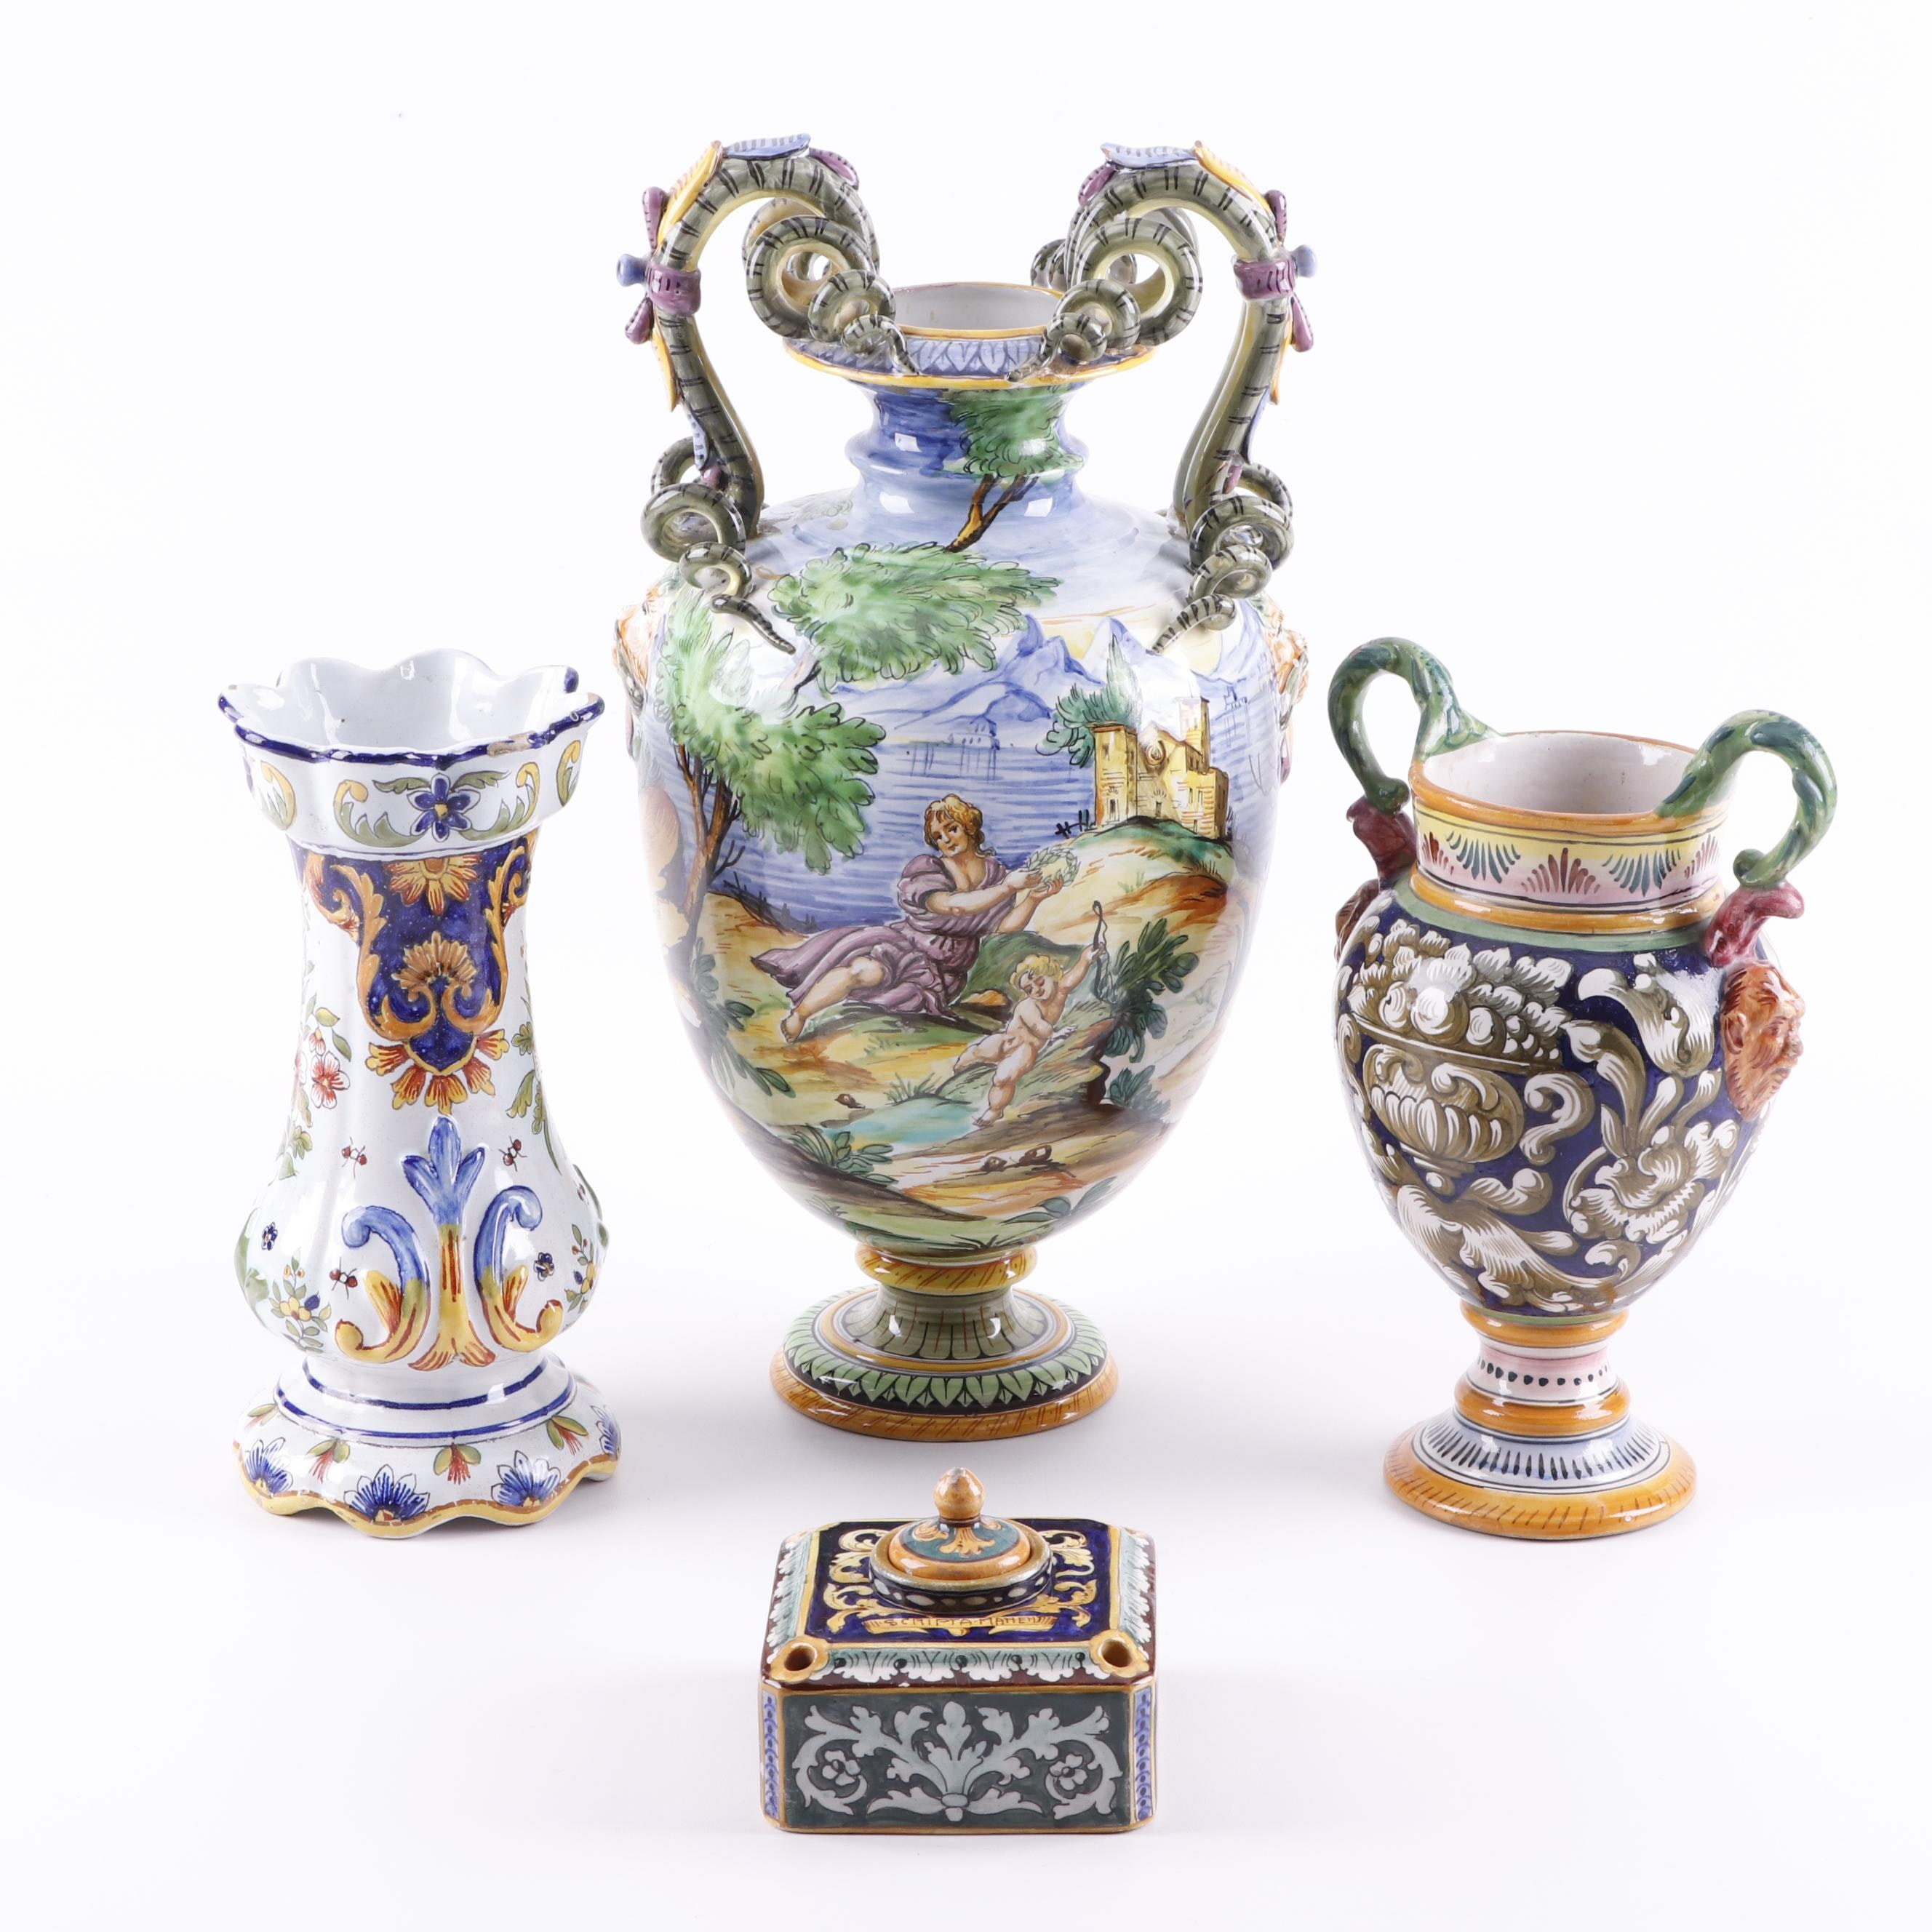 Italian Maiolica Vases and Inkwel Including Cantagallil